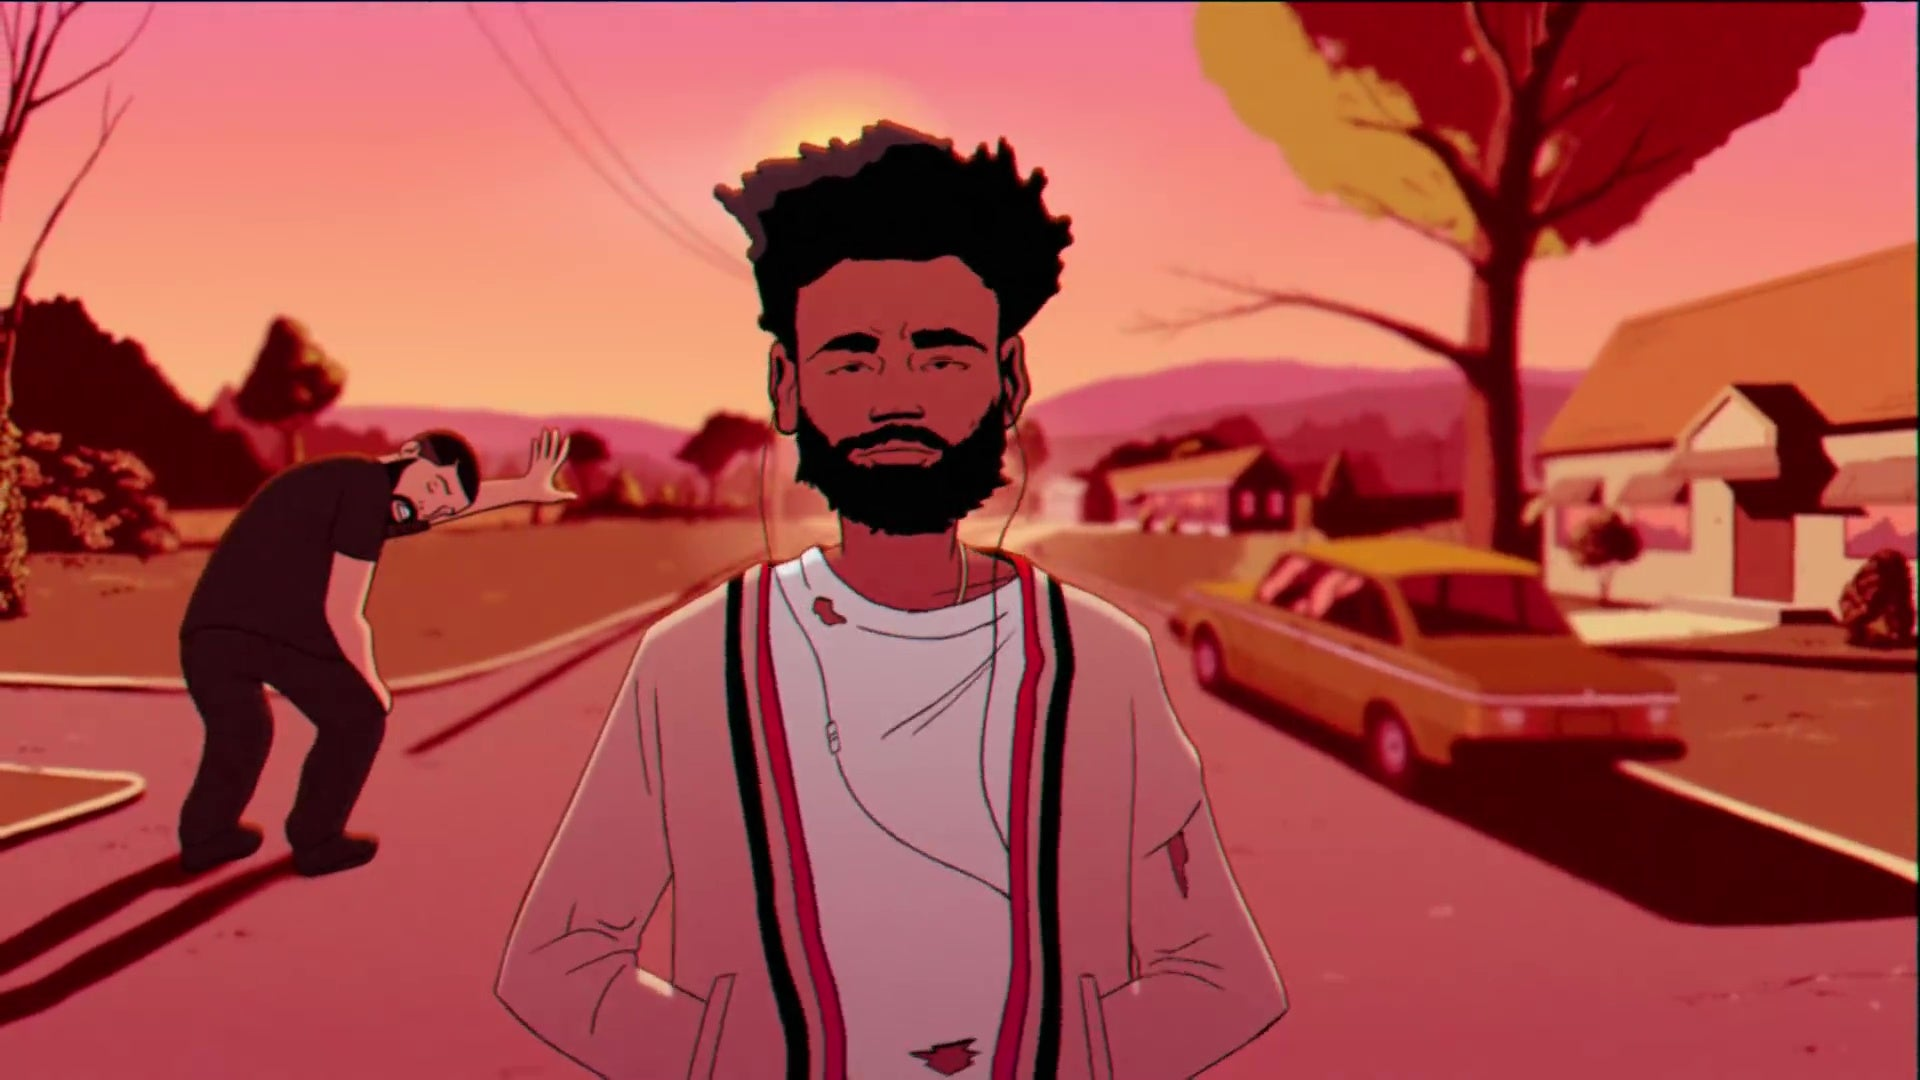 An animated version of Drake, bent over and out of breath.